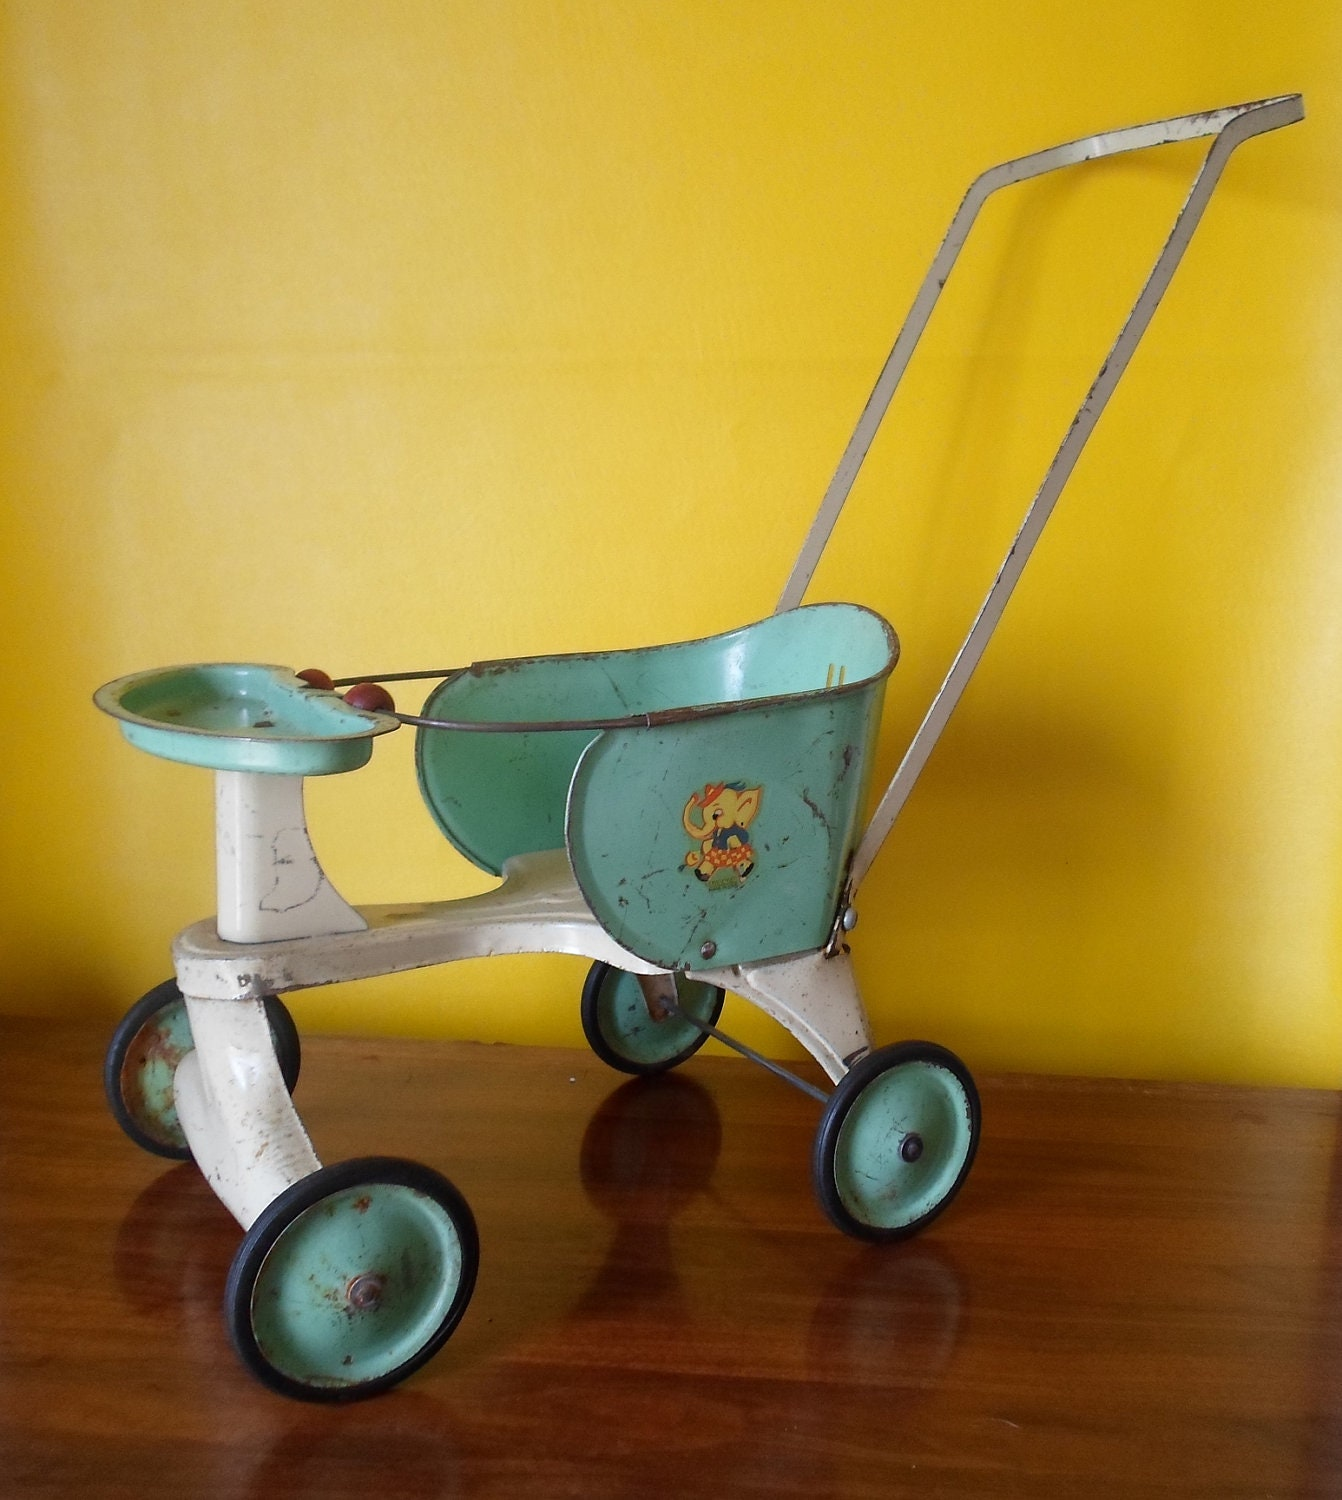 Antique Turner Toy Doll Stroller Made in USA Childs Toy